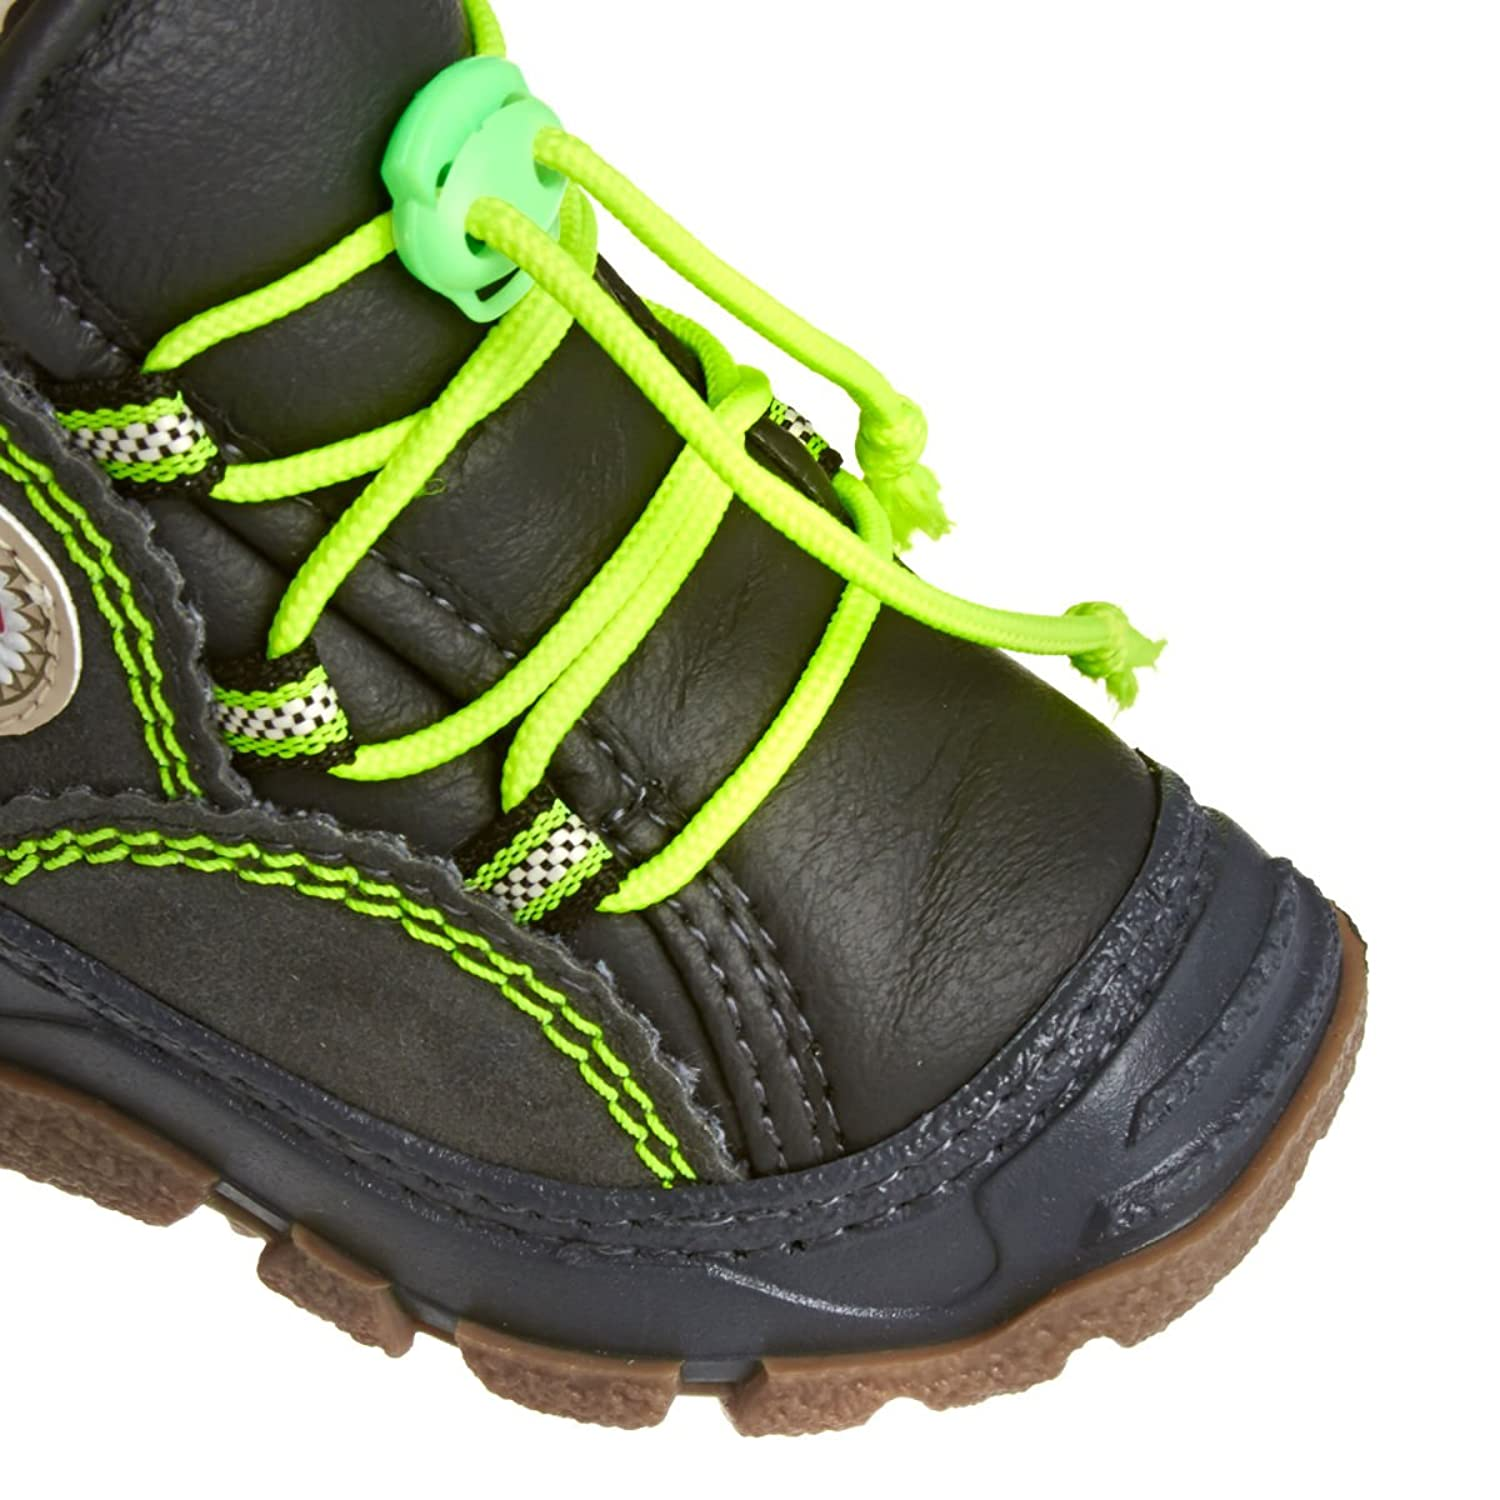 Olang Boots - Olang Panda Boots - Anthracite KyToqUxW